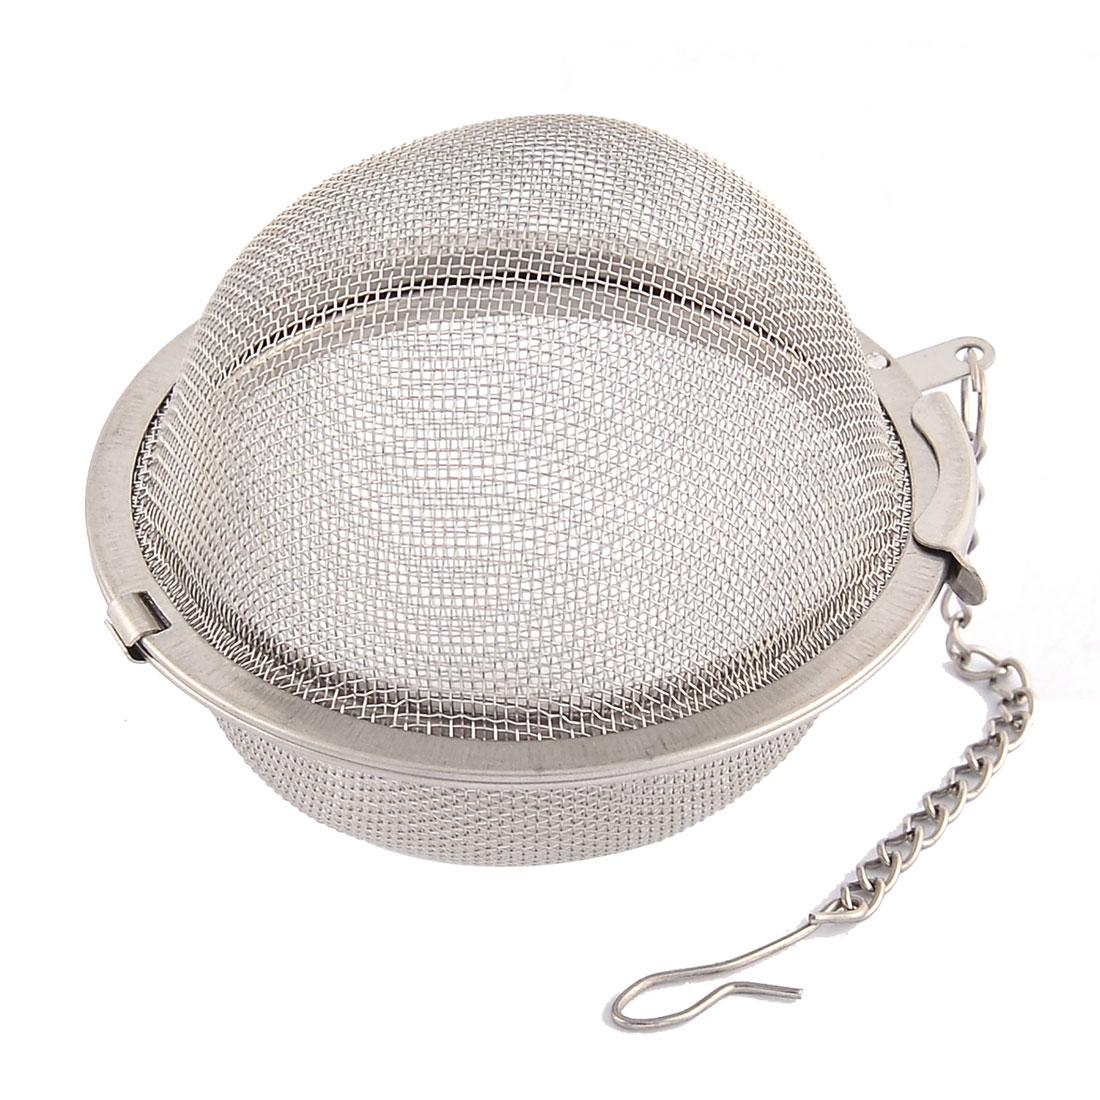 Household 304 Stainless Steel Locking Chain Mesh Tea Ball Strainer Infuser 2.2'' Dia